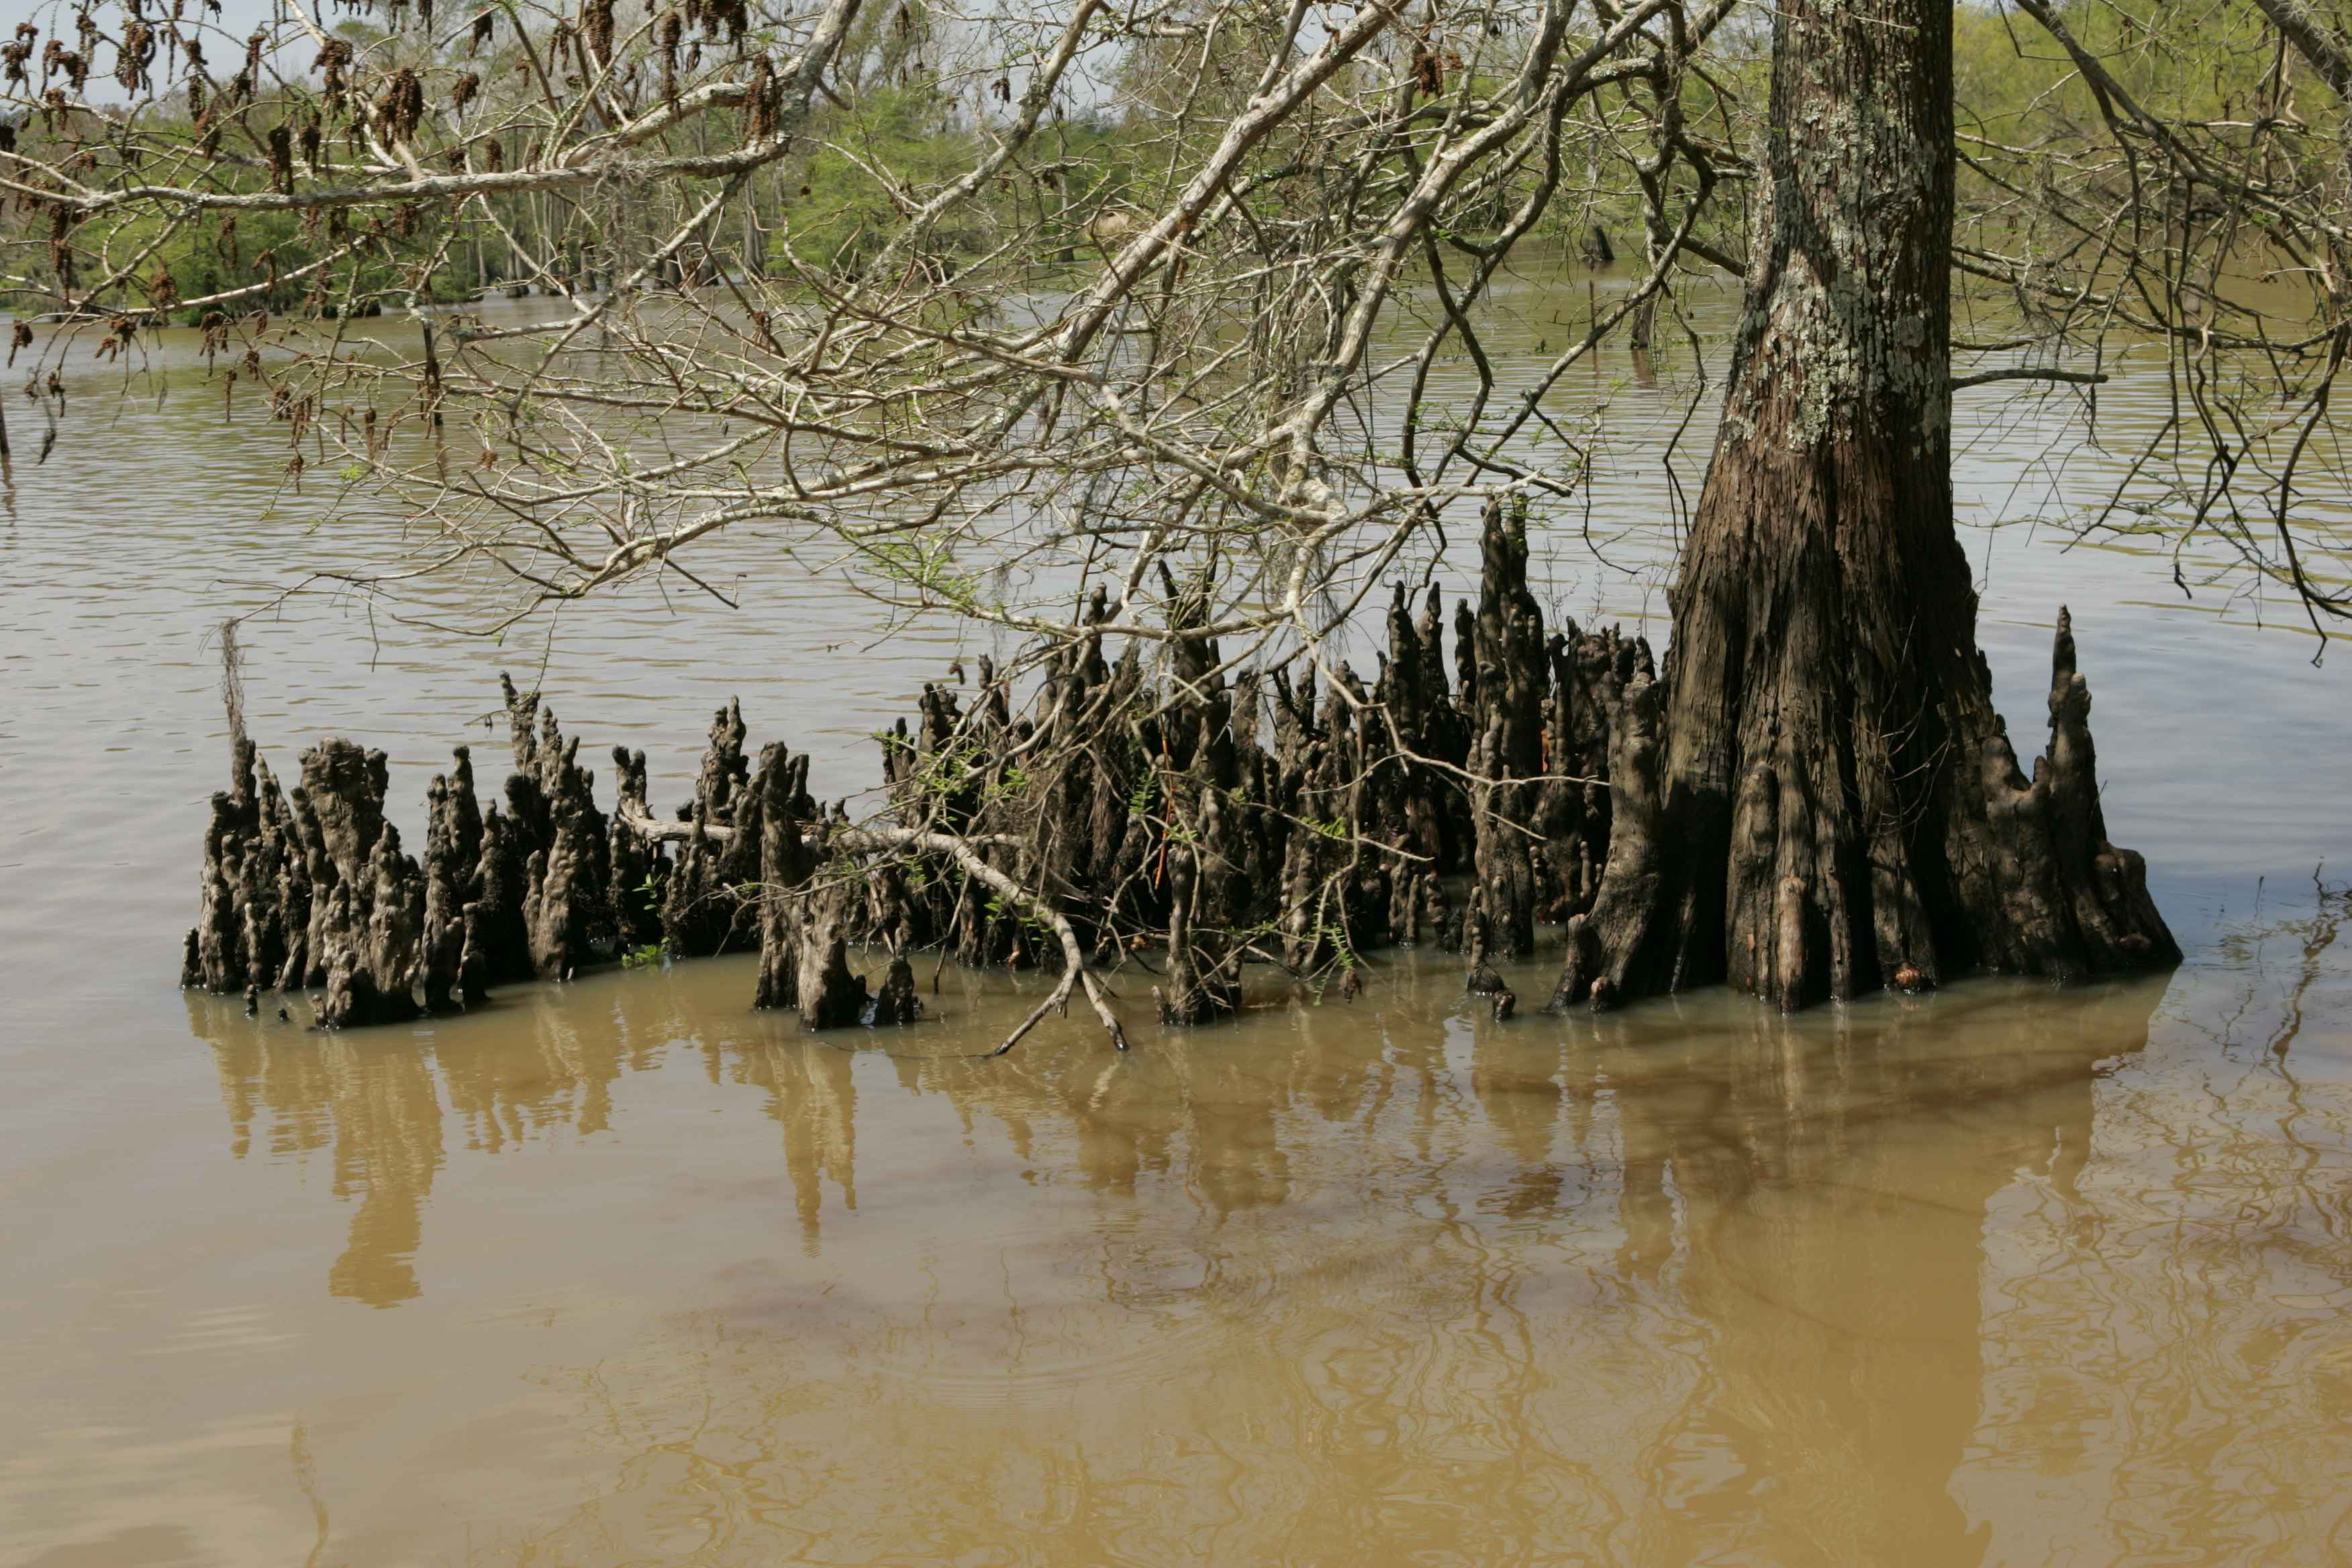 Taxodium_distichum_bald_cypress_trunk_and_knees.jpg